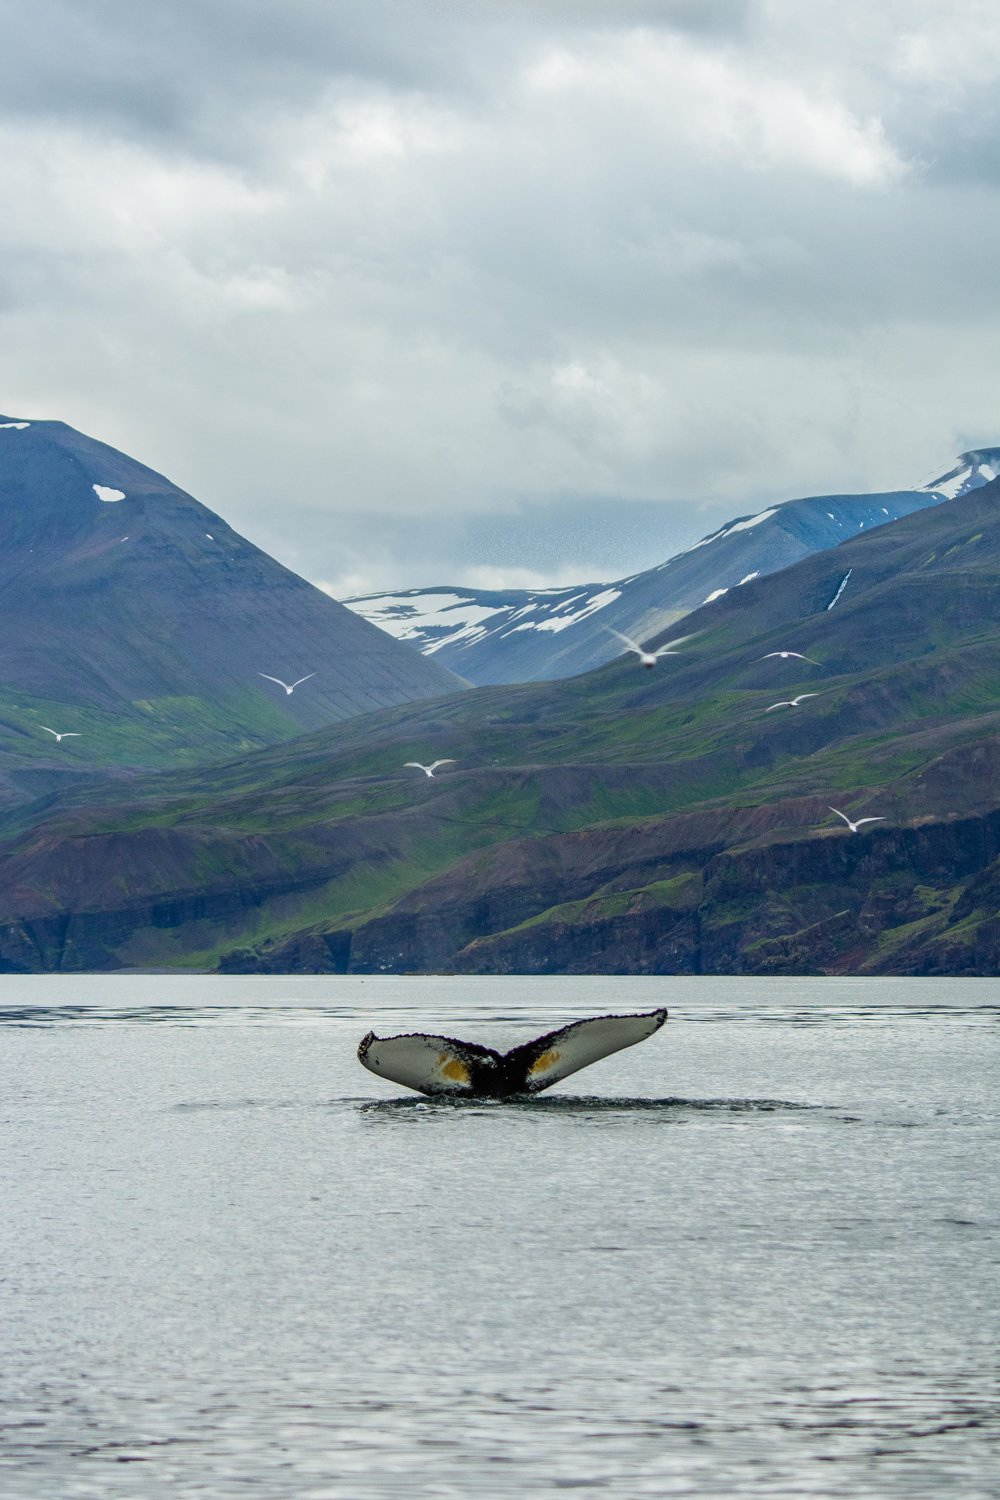 A humpback whale in Húsavík, diving down to feed on herring.